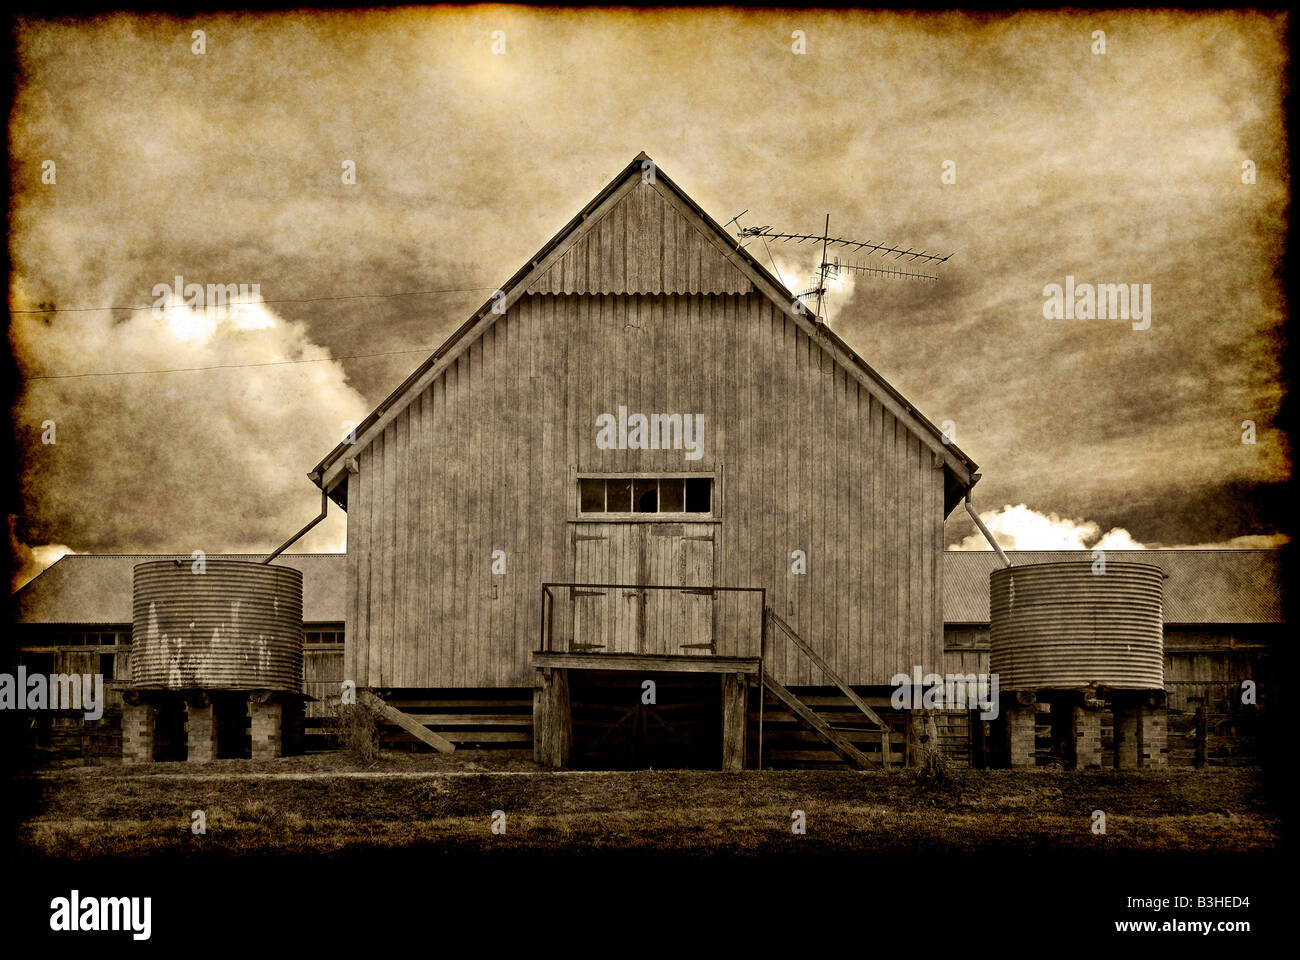 great old grungy image of an old barn on the farm - Stock Image